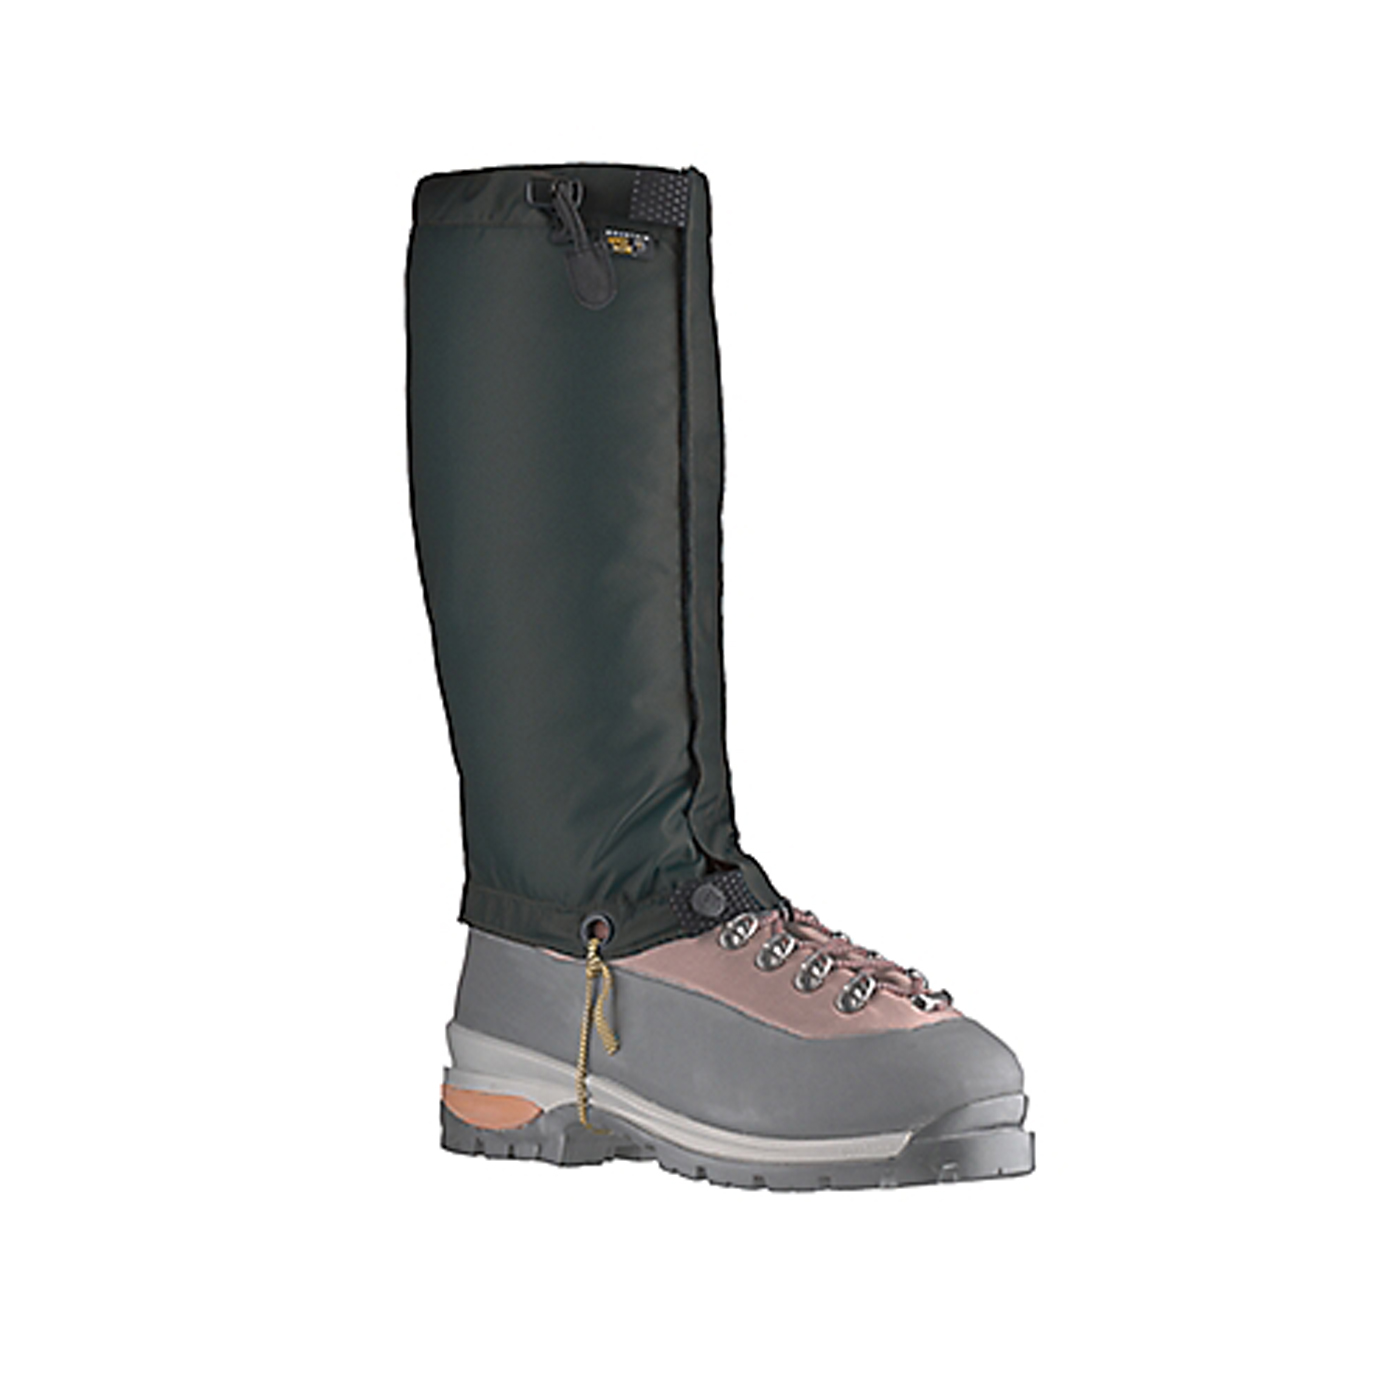 MOUNTAIN HARDWARE | Nut Shell High - Black